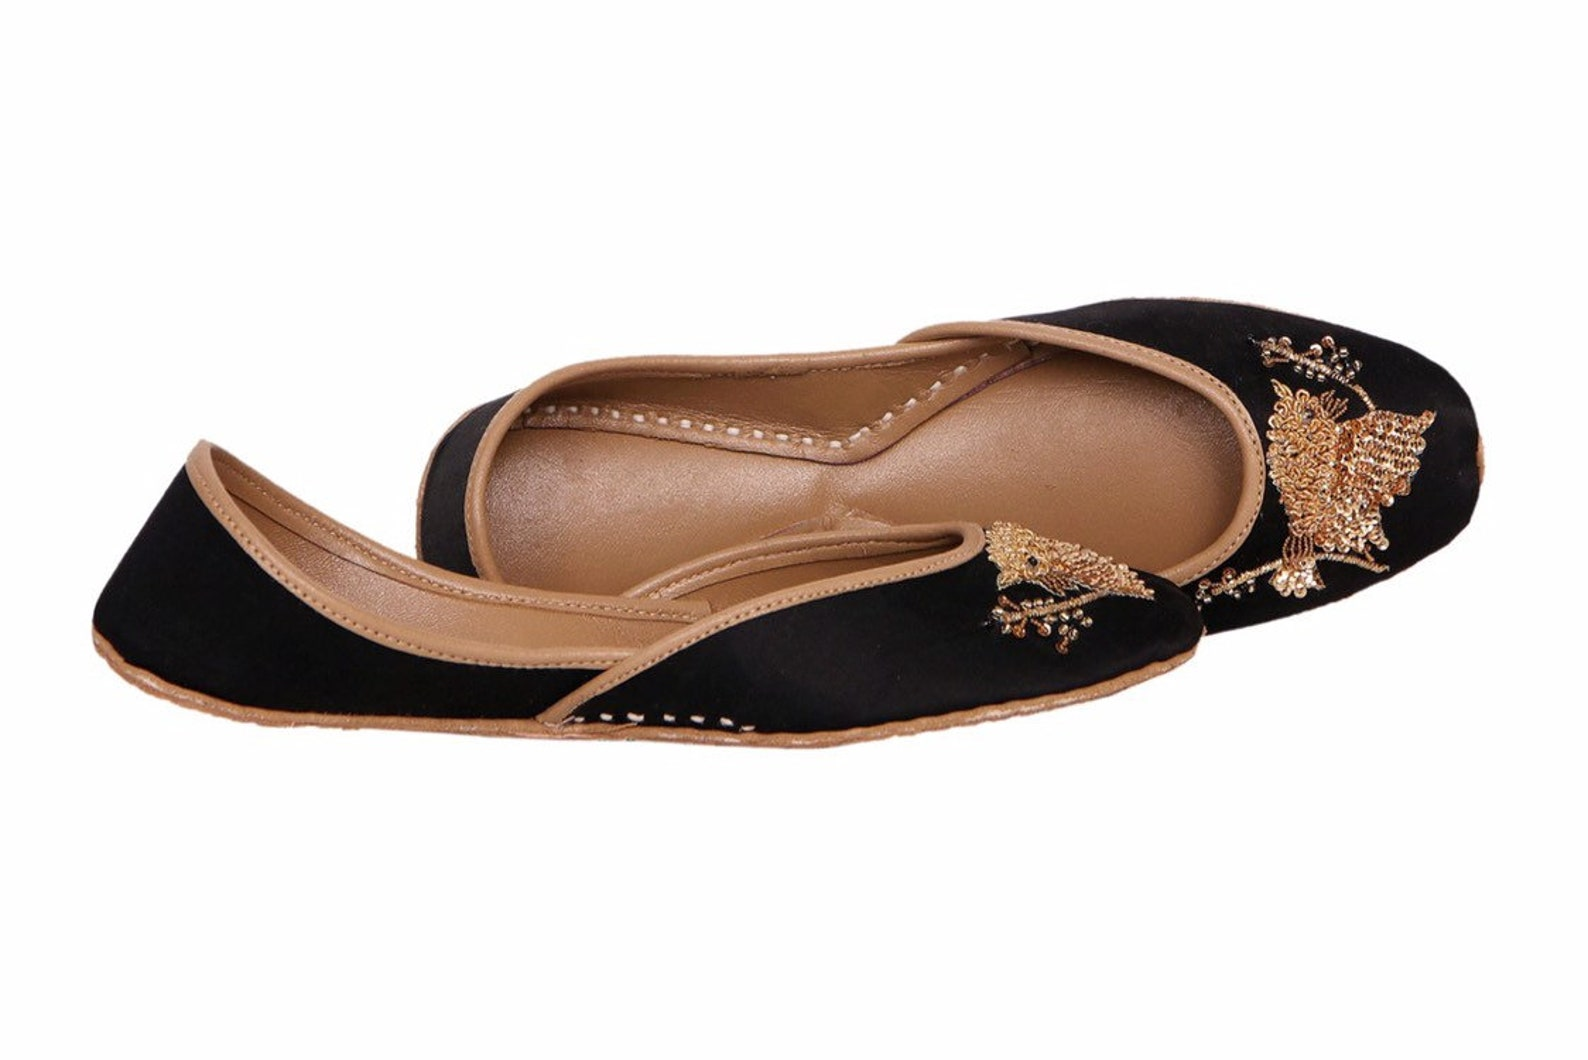 black base copper embellished ballet flat shoes black jutis black slip ons mojari black khussa